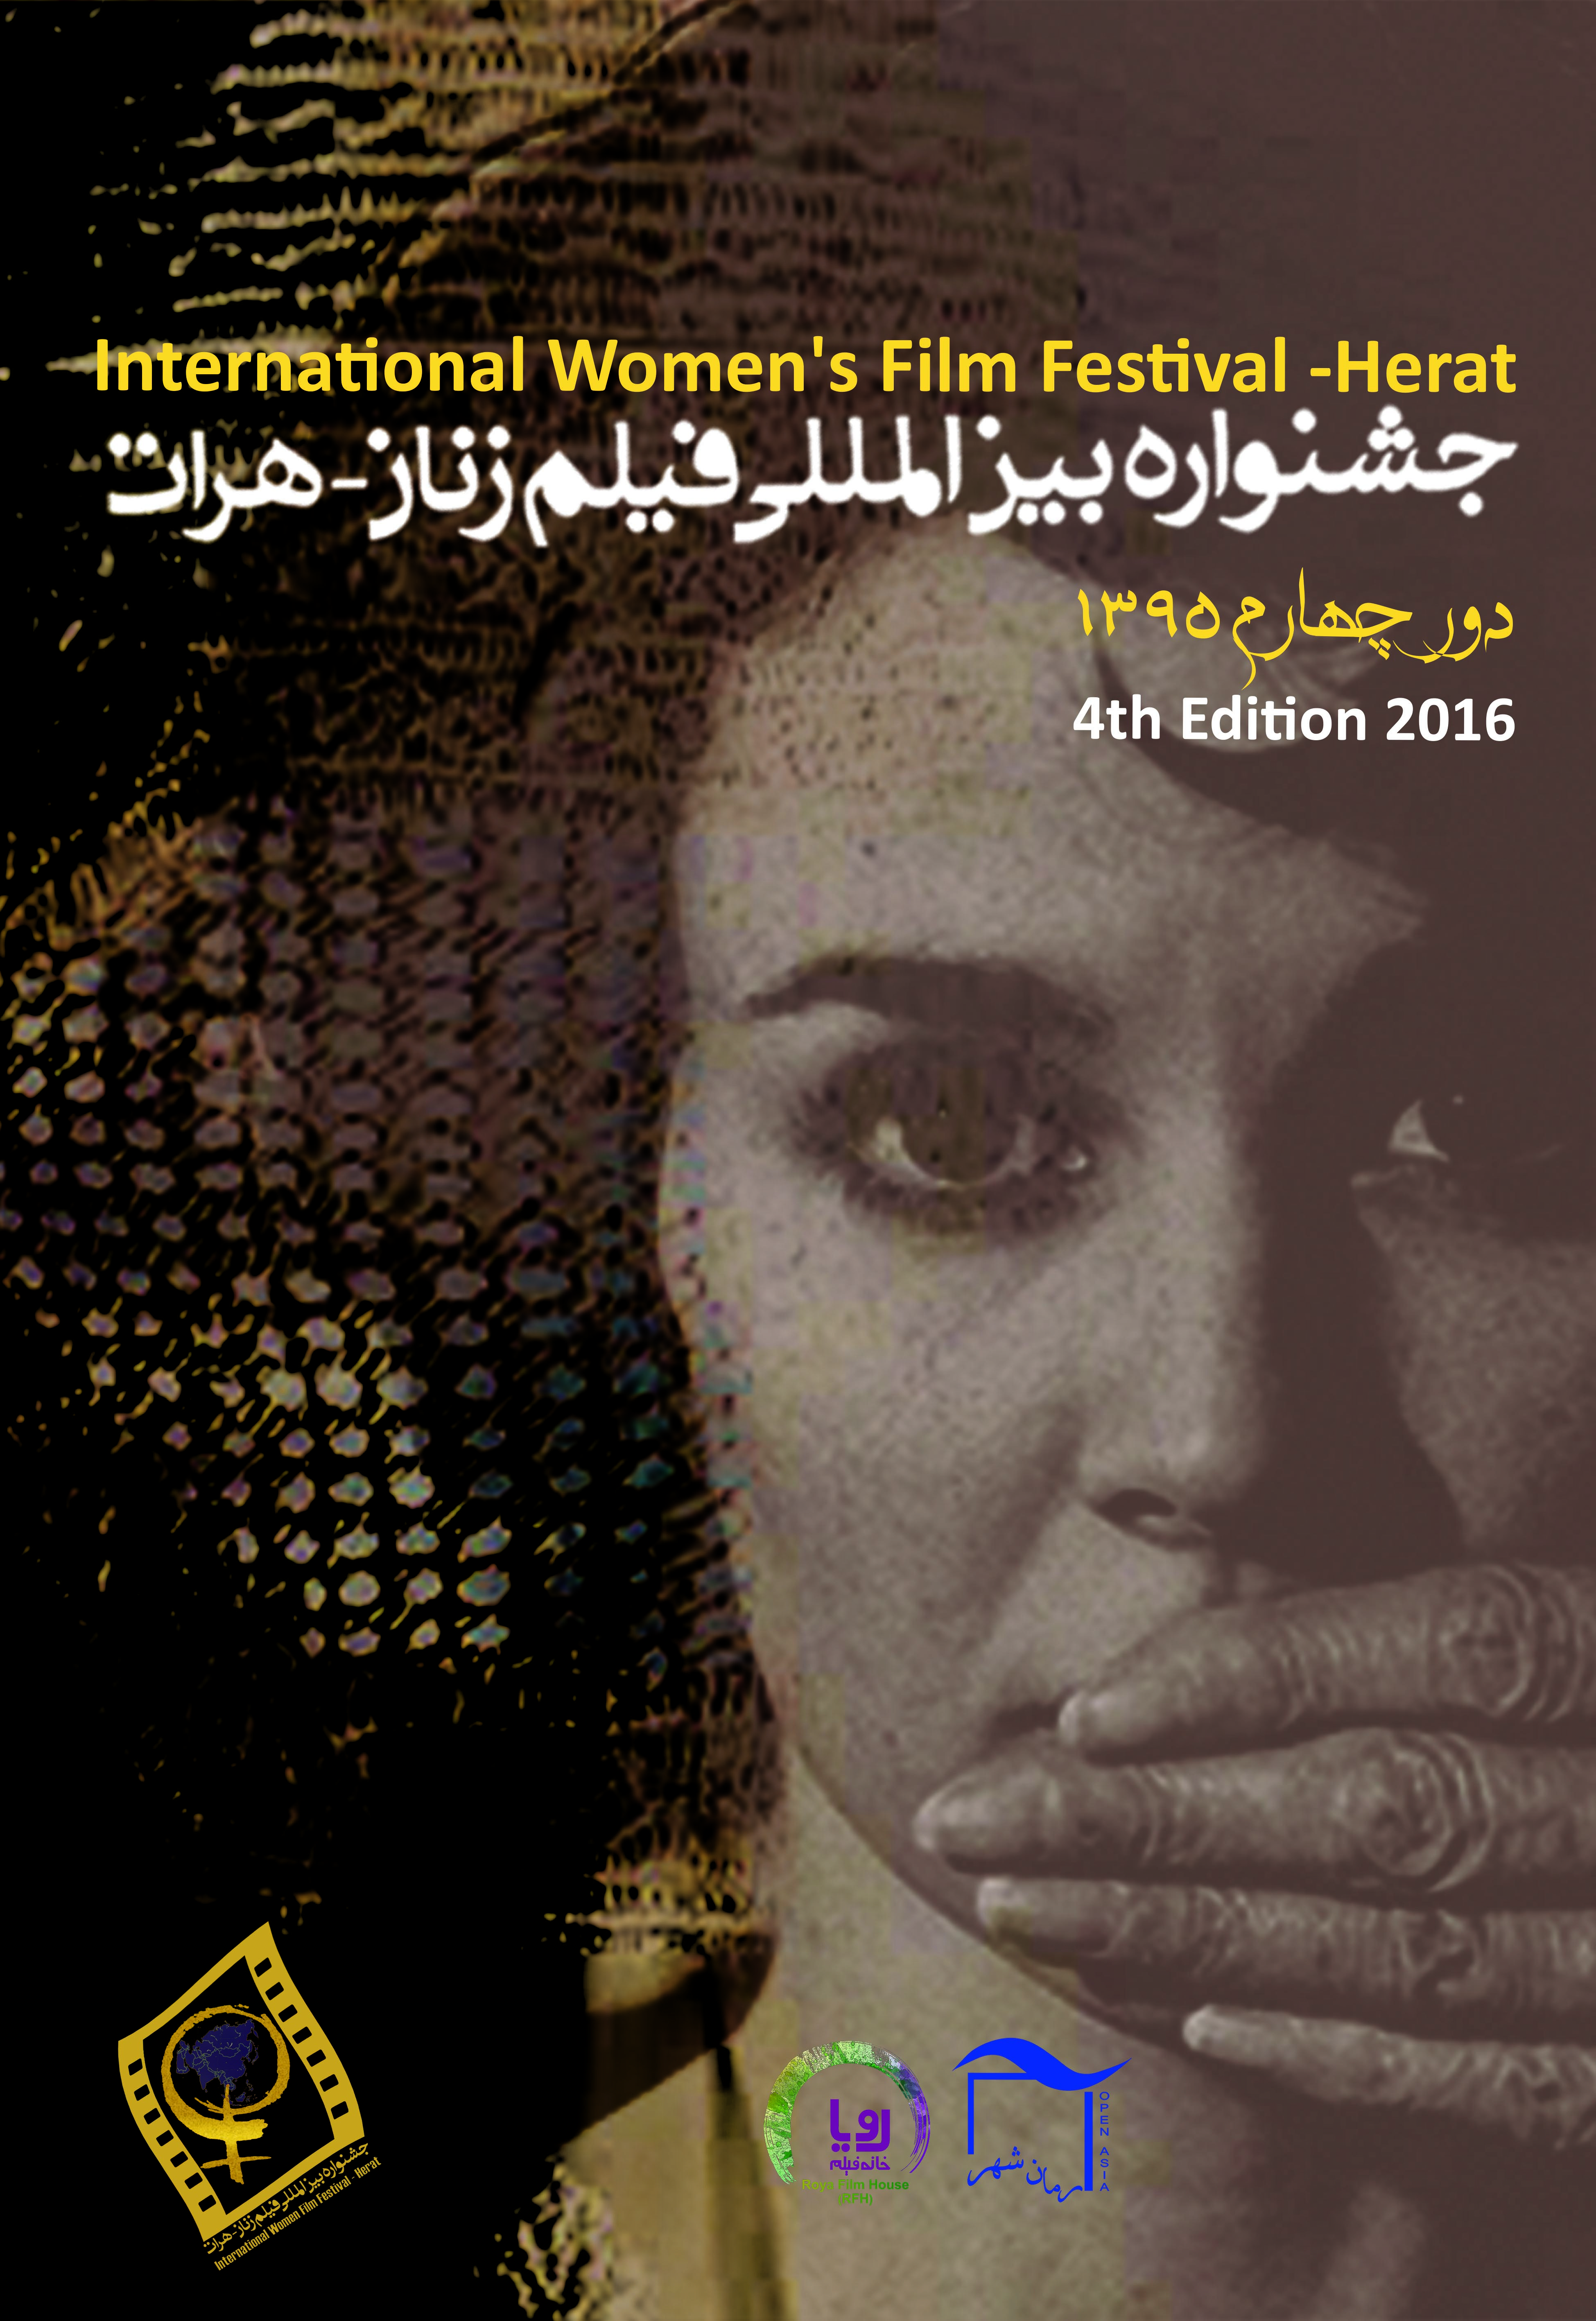 POSTER 2016 4th edition Festival